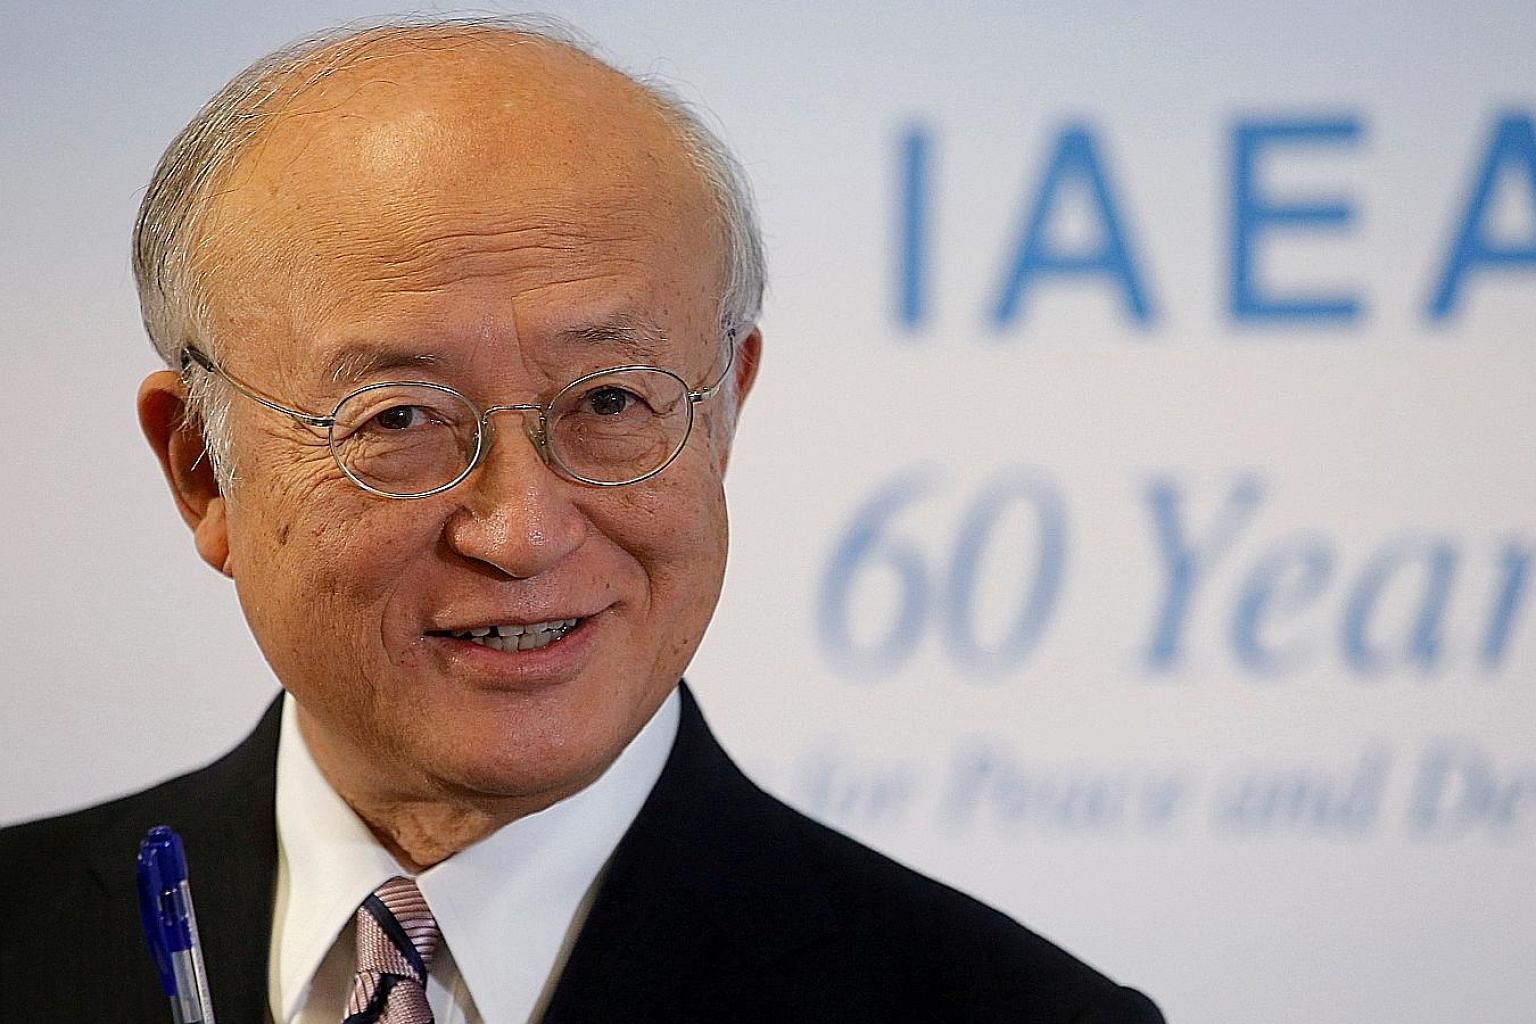 No details were given about the cause of death, but UN nuclear watchdog chief Yukiya Amano had been ill for some months.